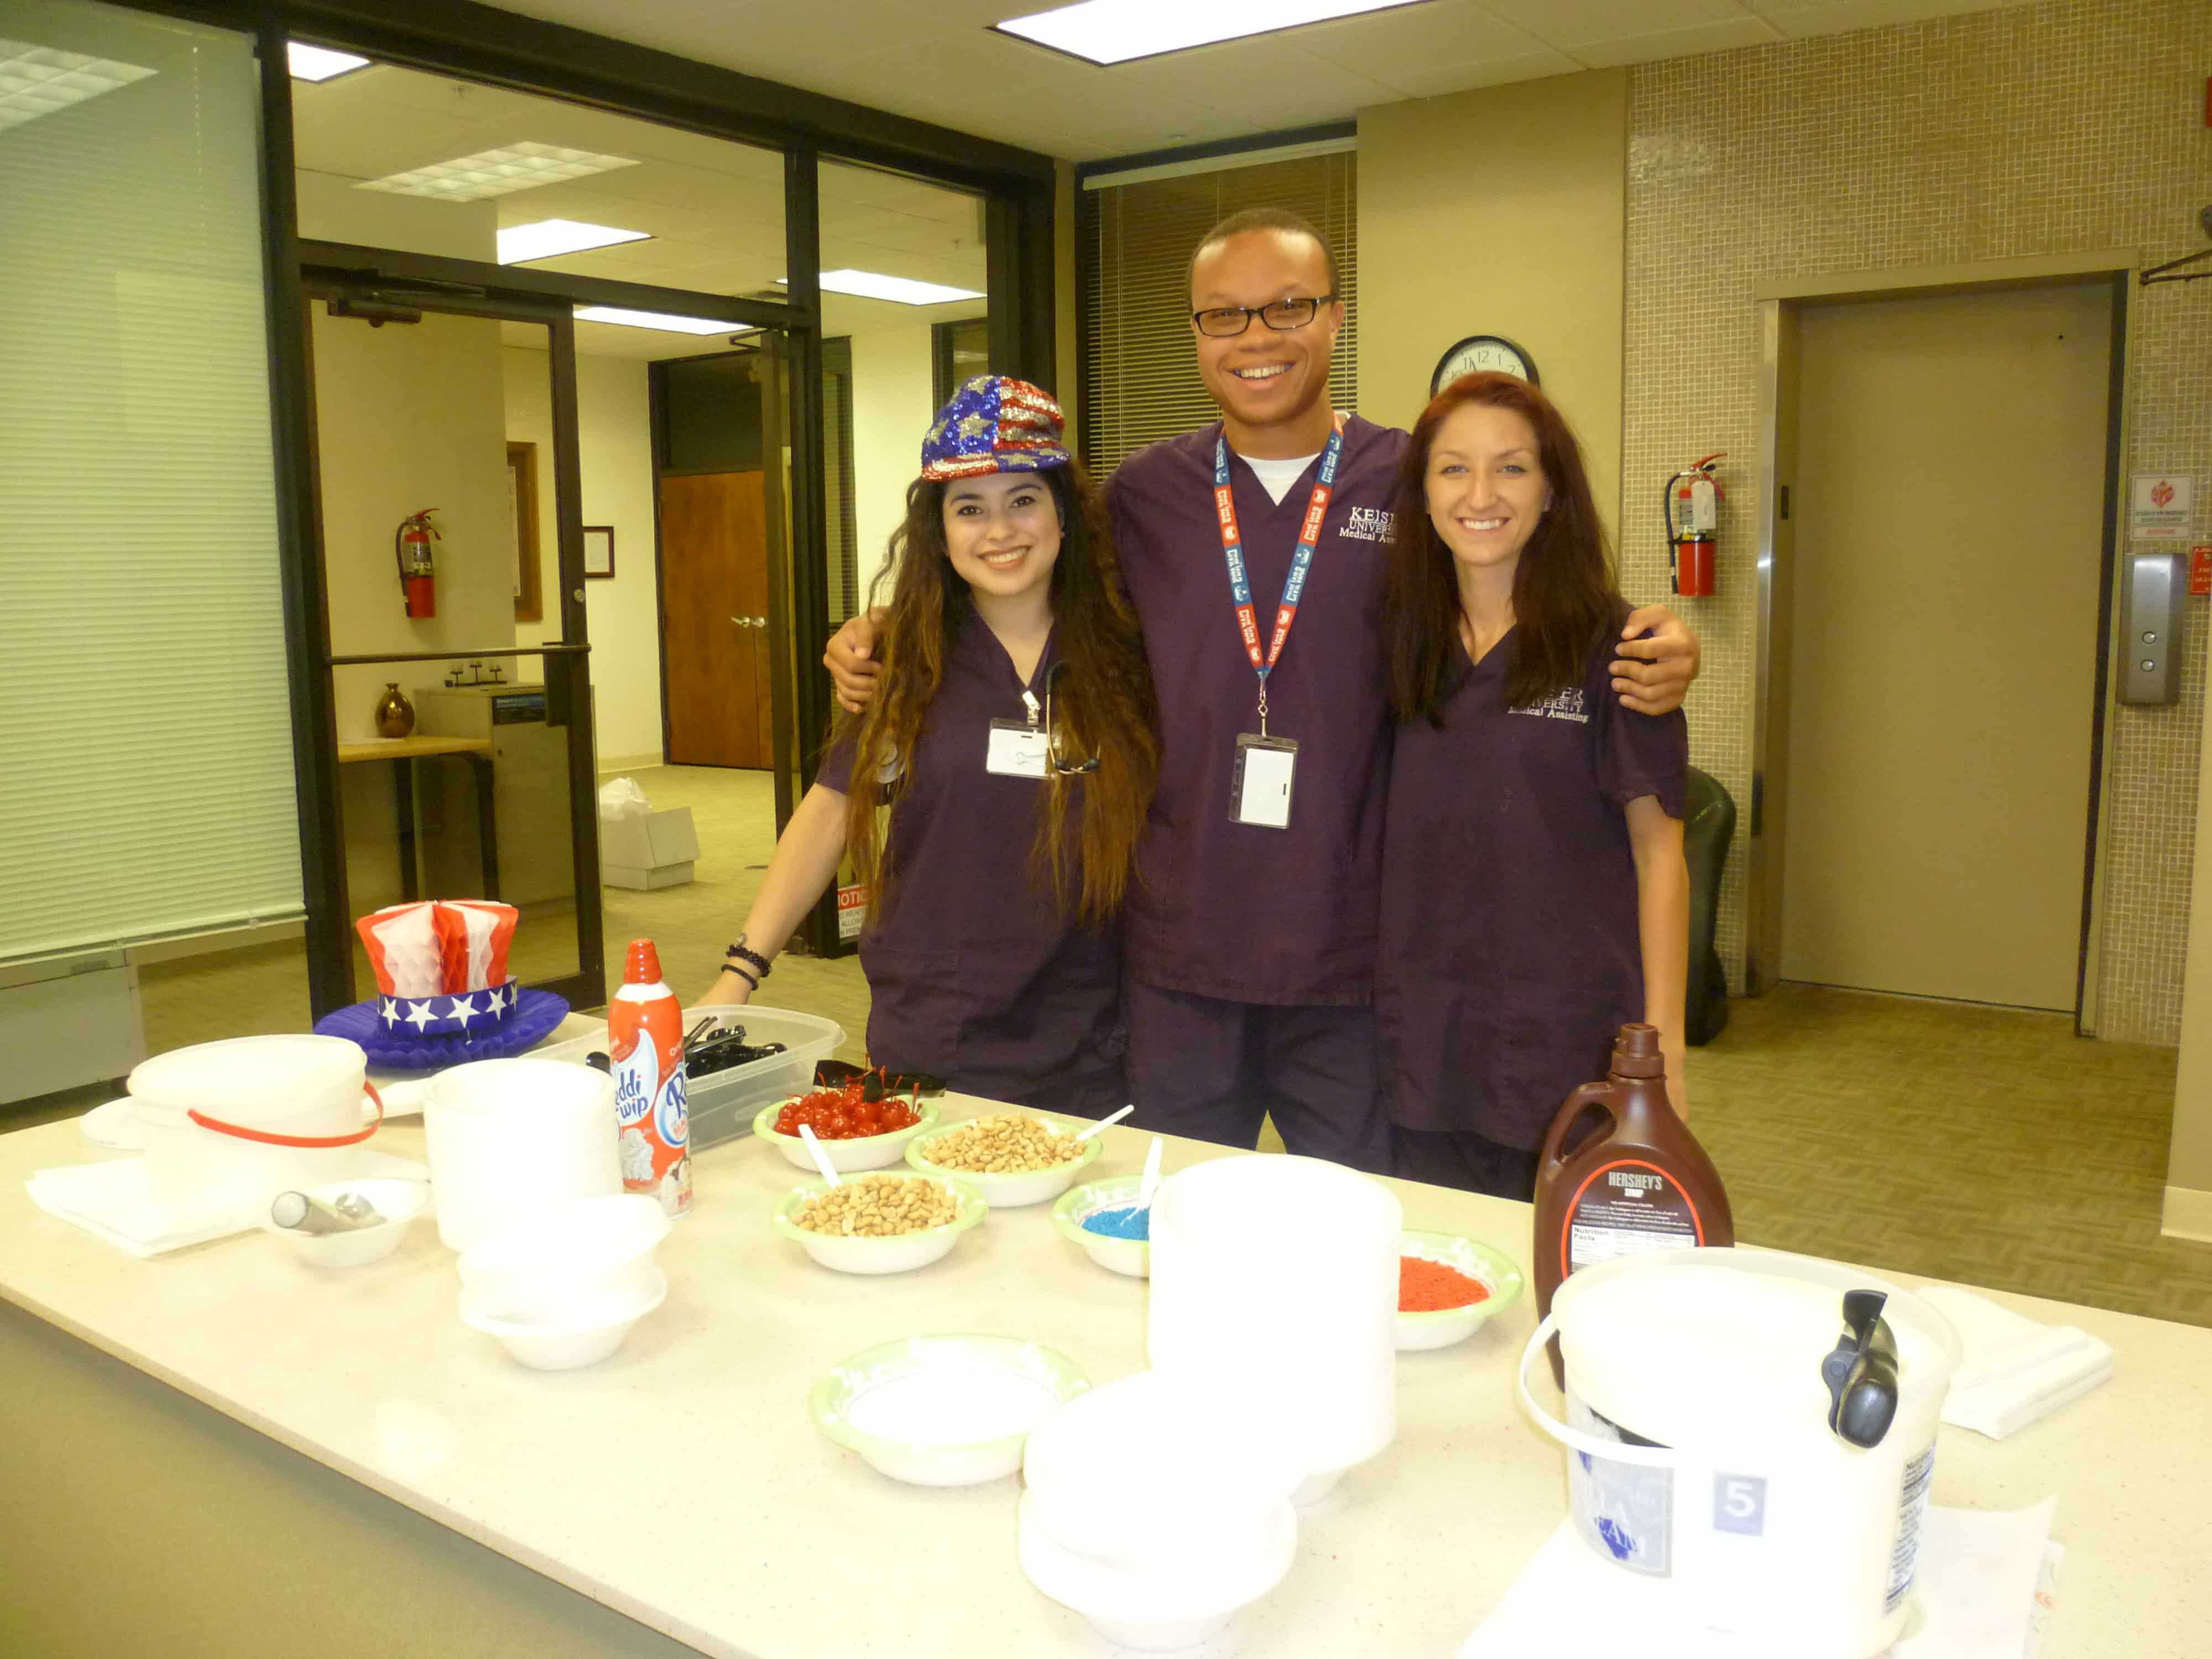 The New Port Richey & Clearwater Campuses Celebrates Flag Day with Ice Cream Socials